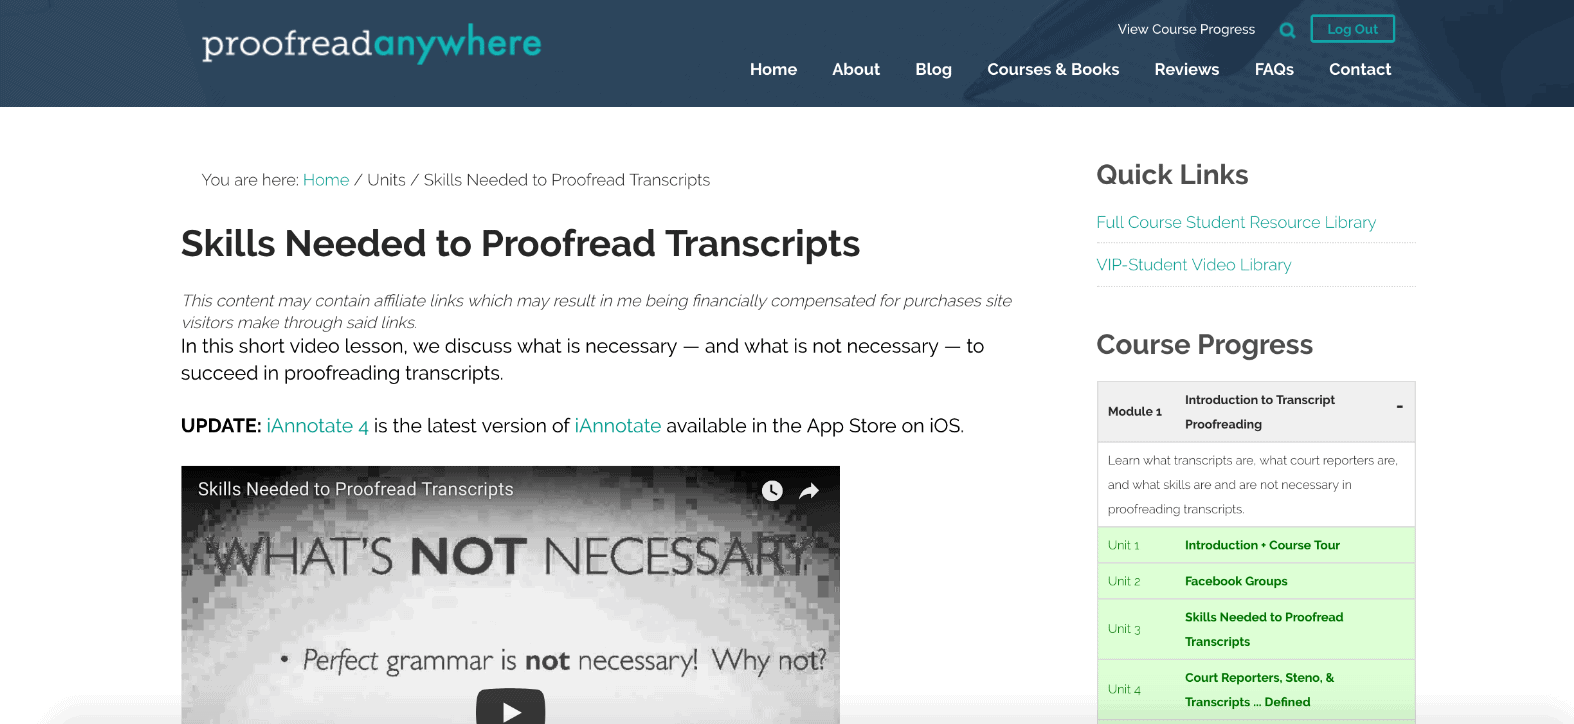 Proofread Anywhere course screenshot